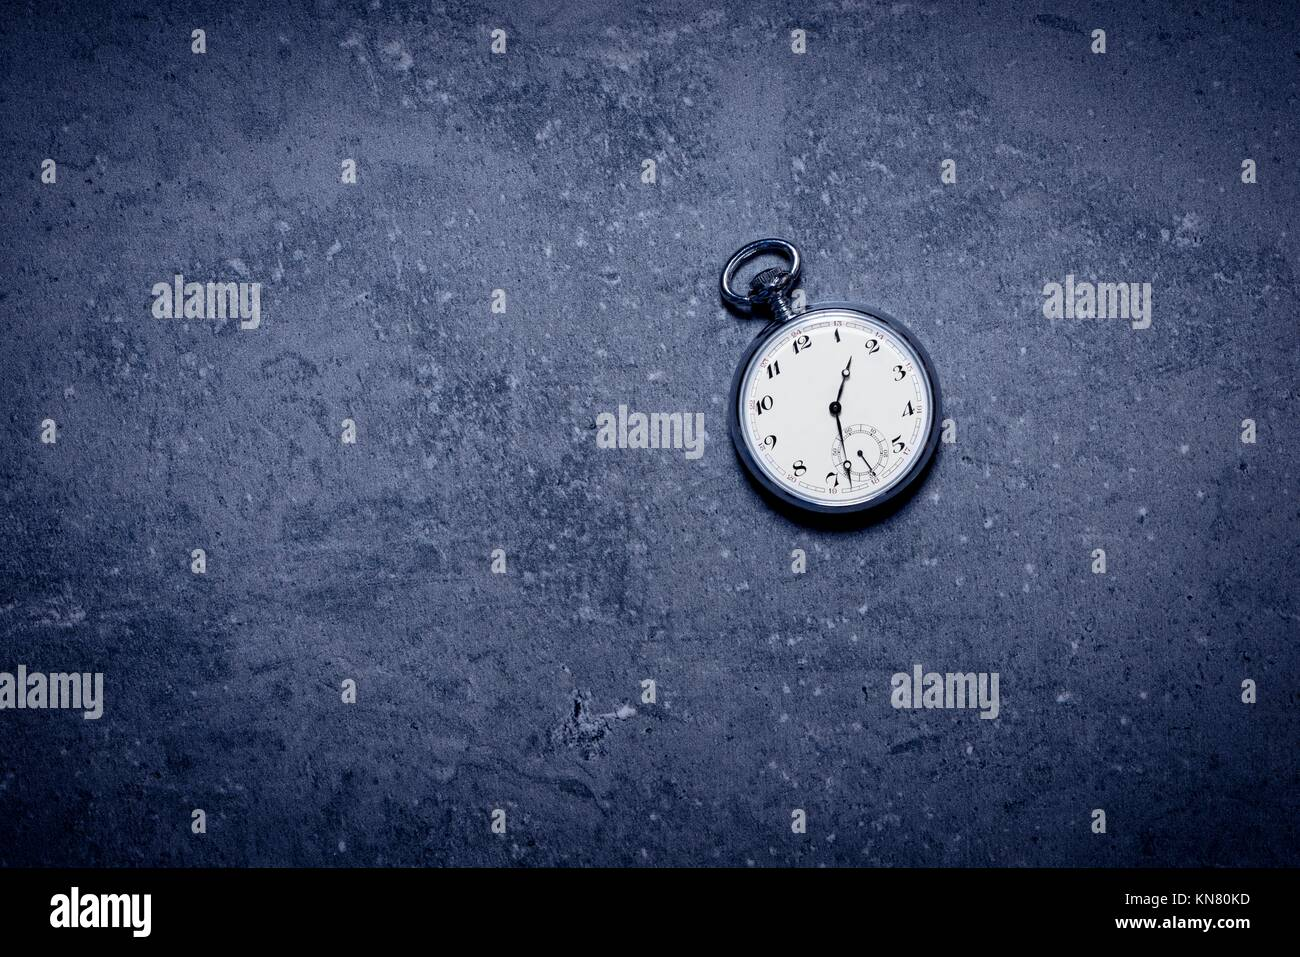 Old pocket watch on stone table in darkness. Symbol of time, deadline and nostalgia. - Stock Image